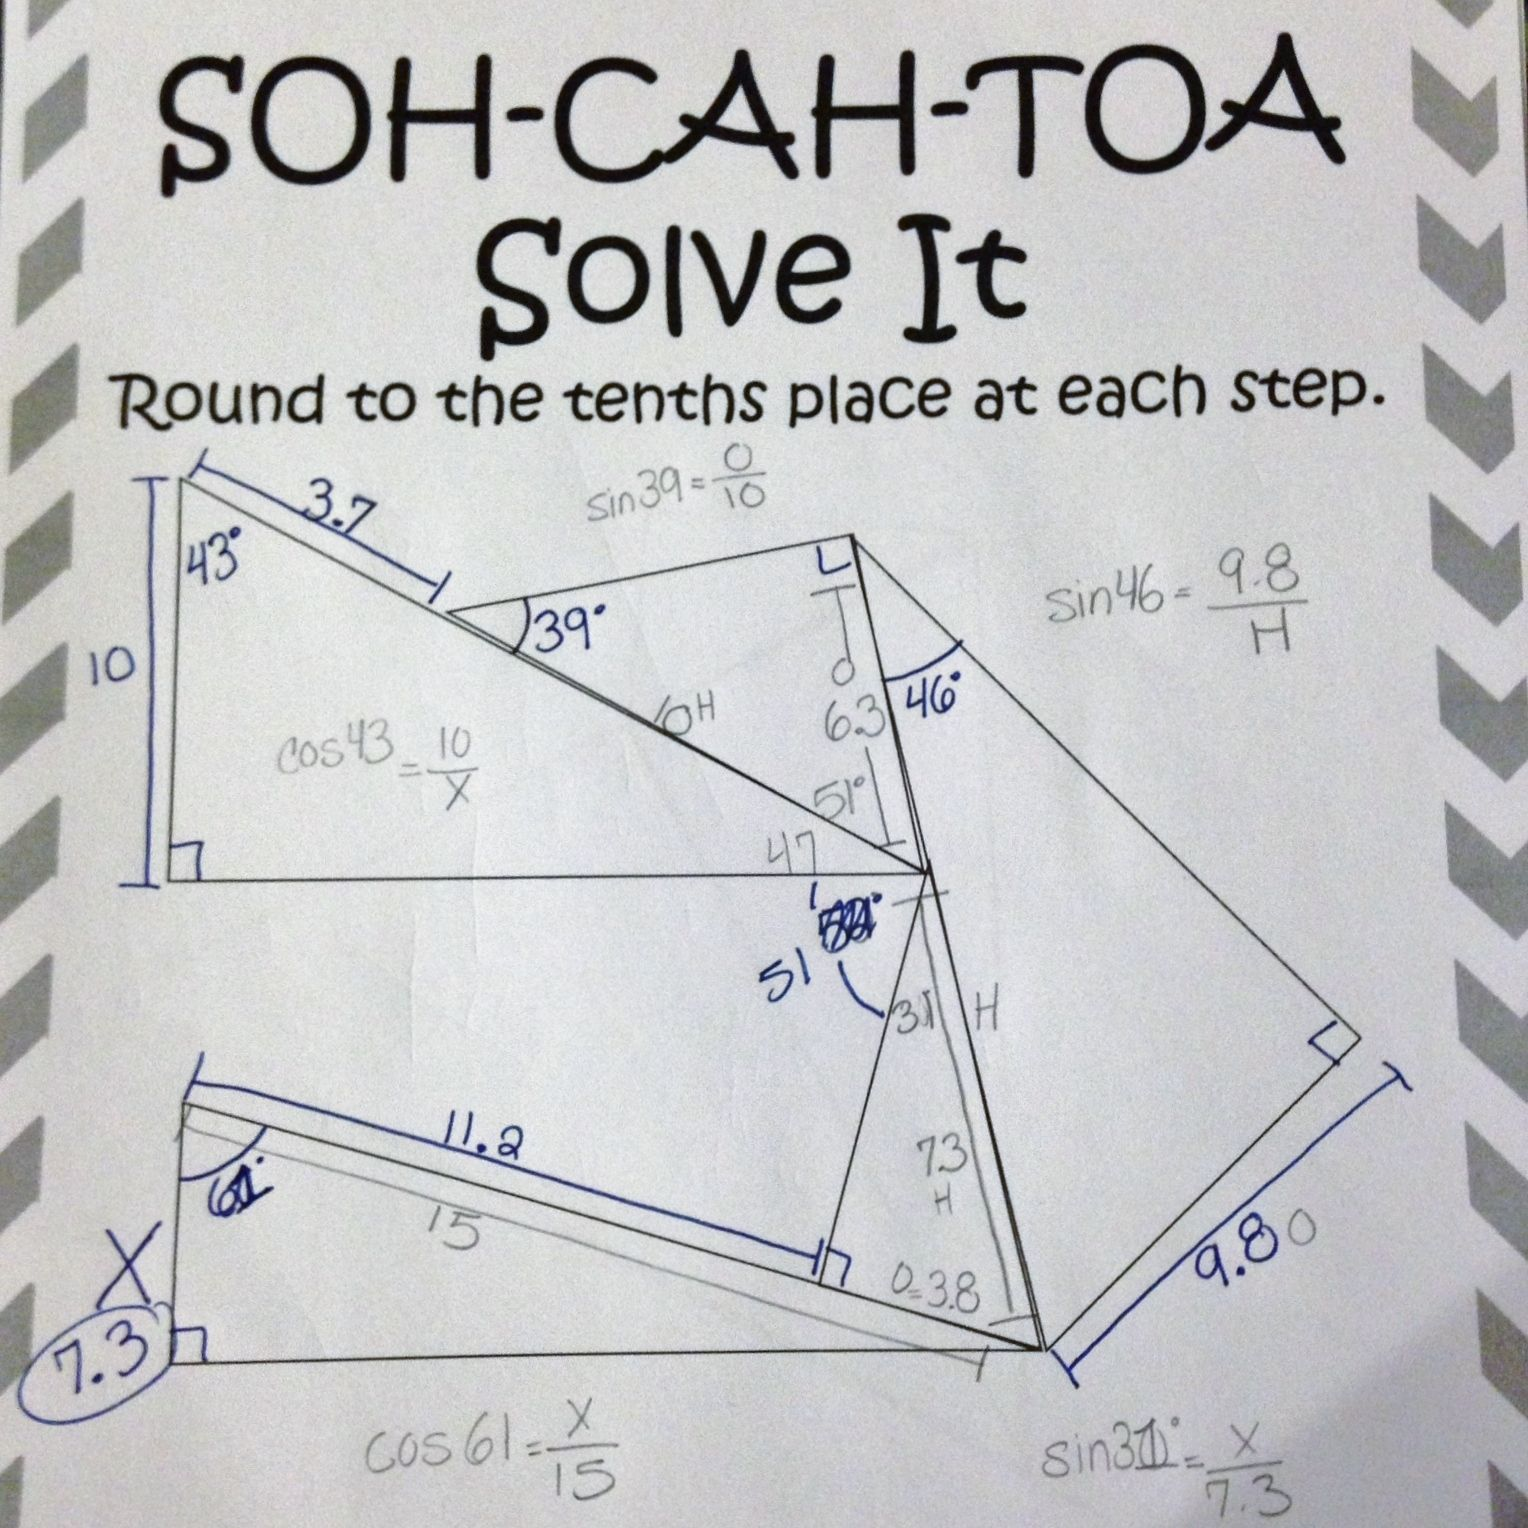 Soh Cah Toa Solve It 3 Sine Cosine Tangent Puzzles Teaching Geometry Geometry Lessons Math Lesson Plans